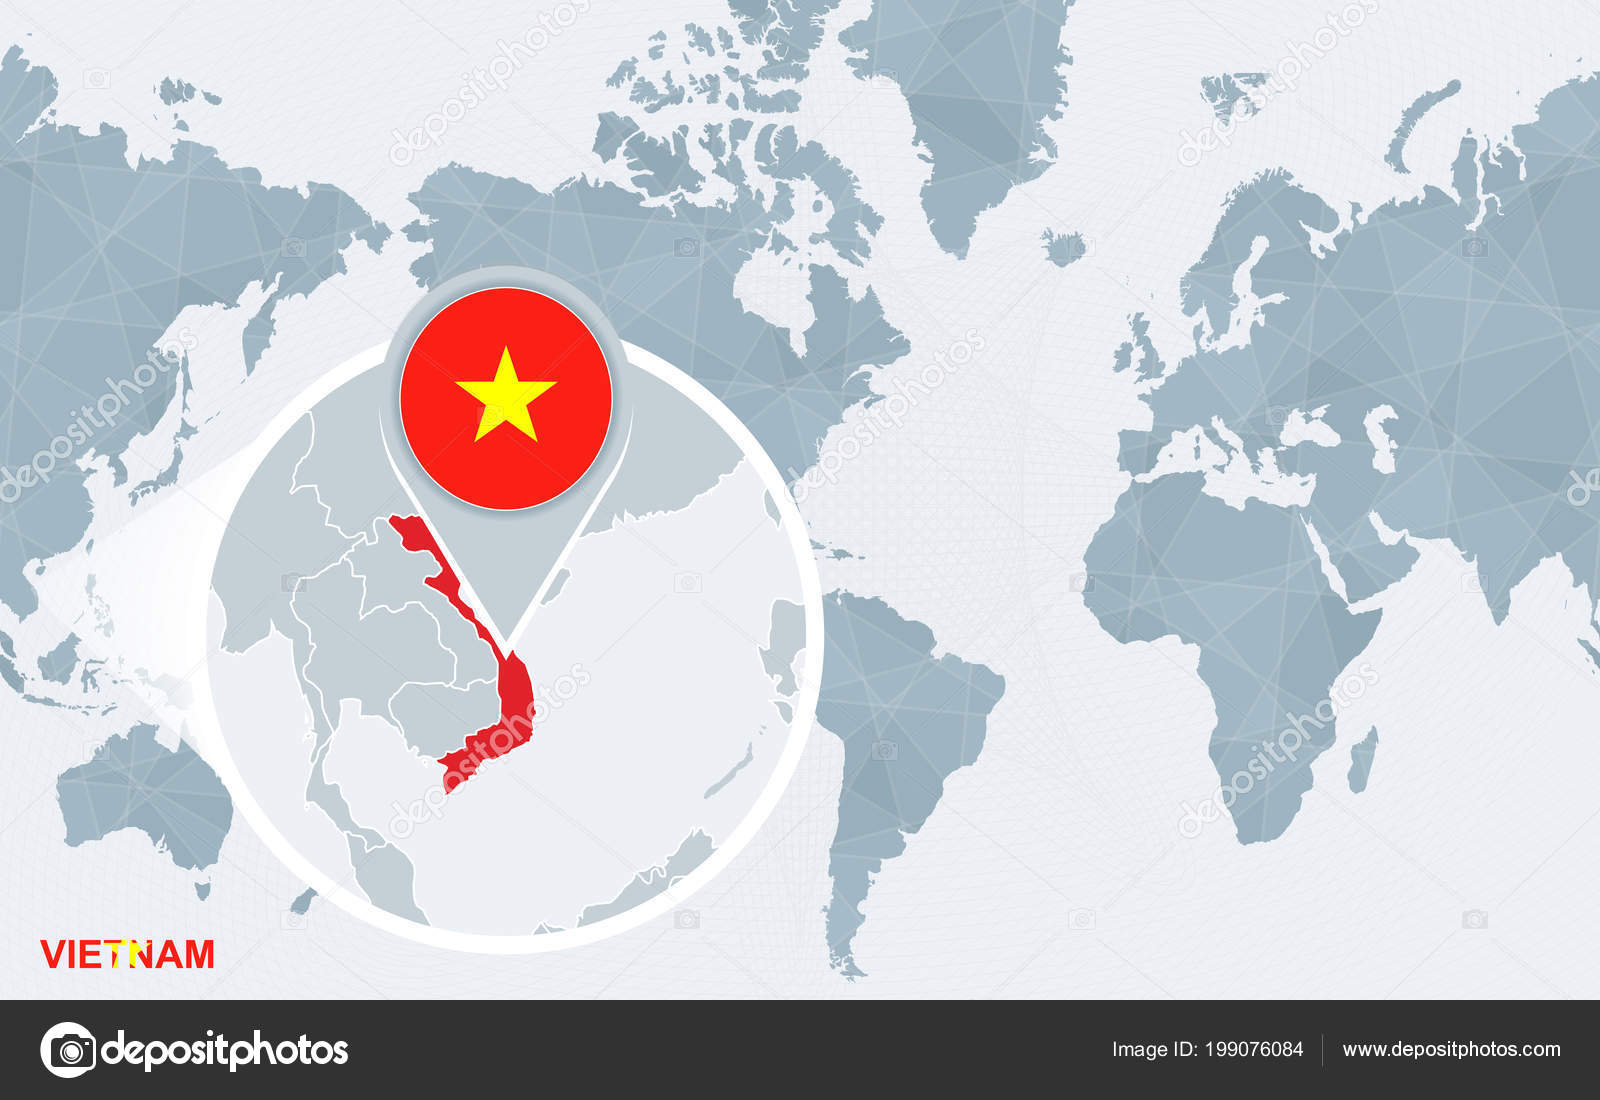 World Map Centered America Magnified Vietnam Blue Flag Map Vietnam ...